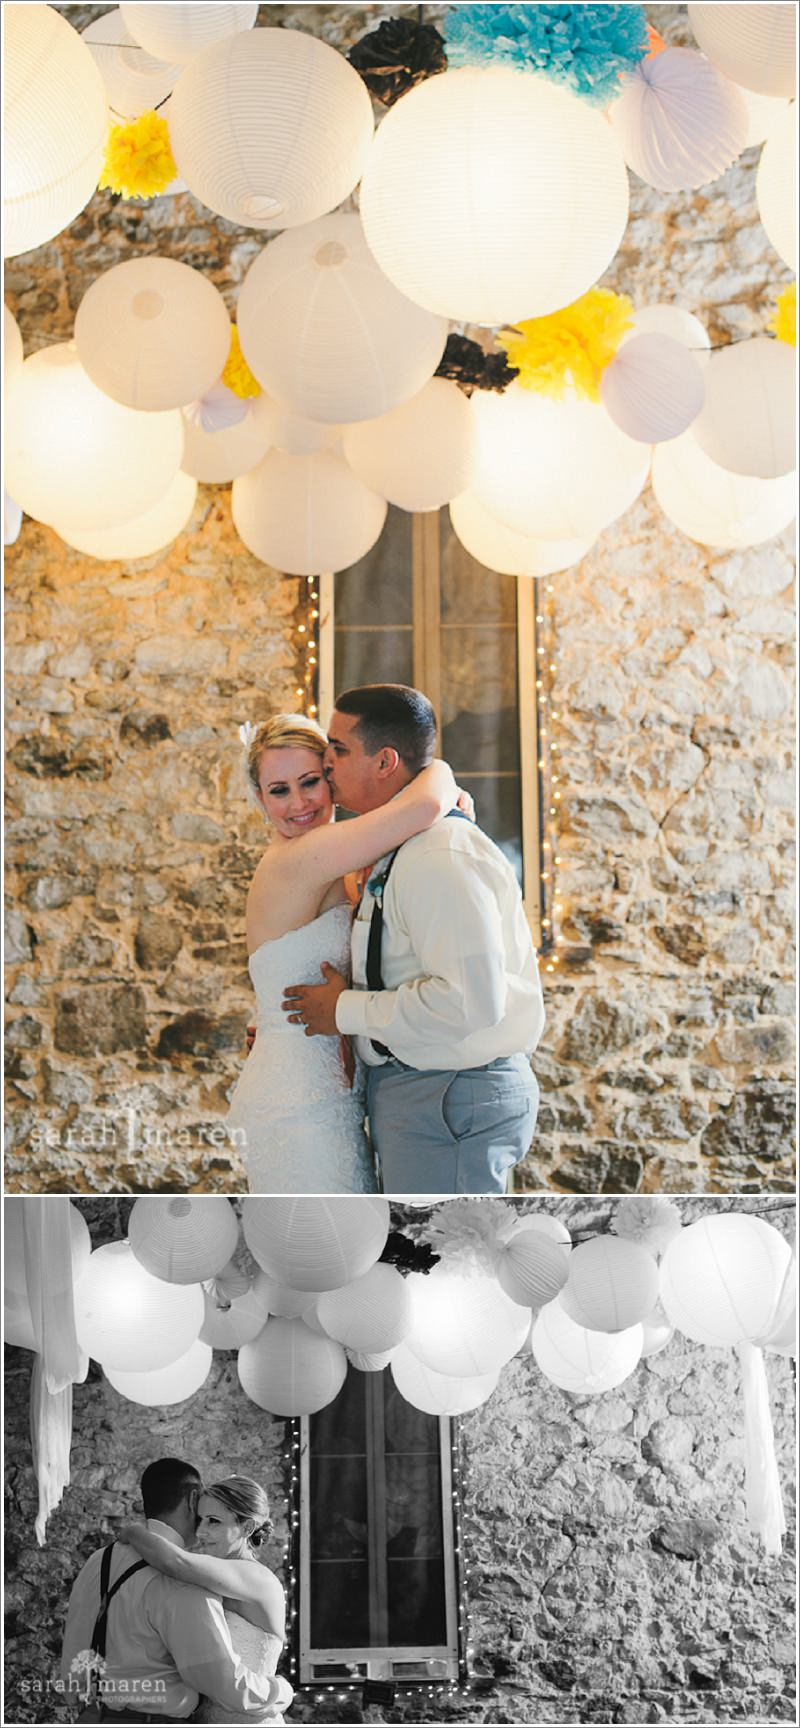 Miners Foundry Wedding - Photo by Sarah Maren Photography